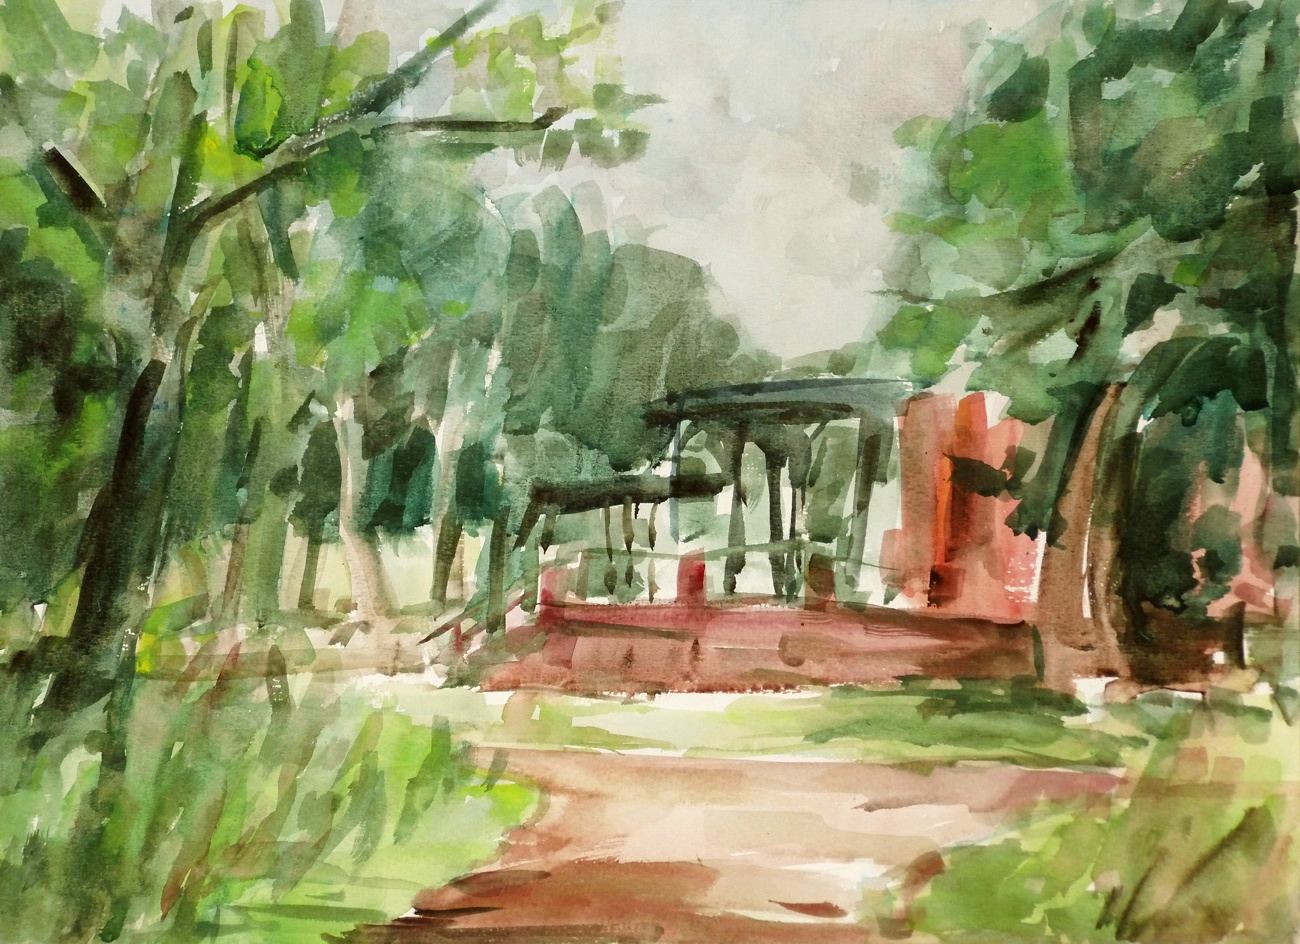 24_1990-06-15_MD_Herrenkrughotel_480x360_Aquarell